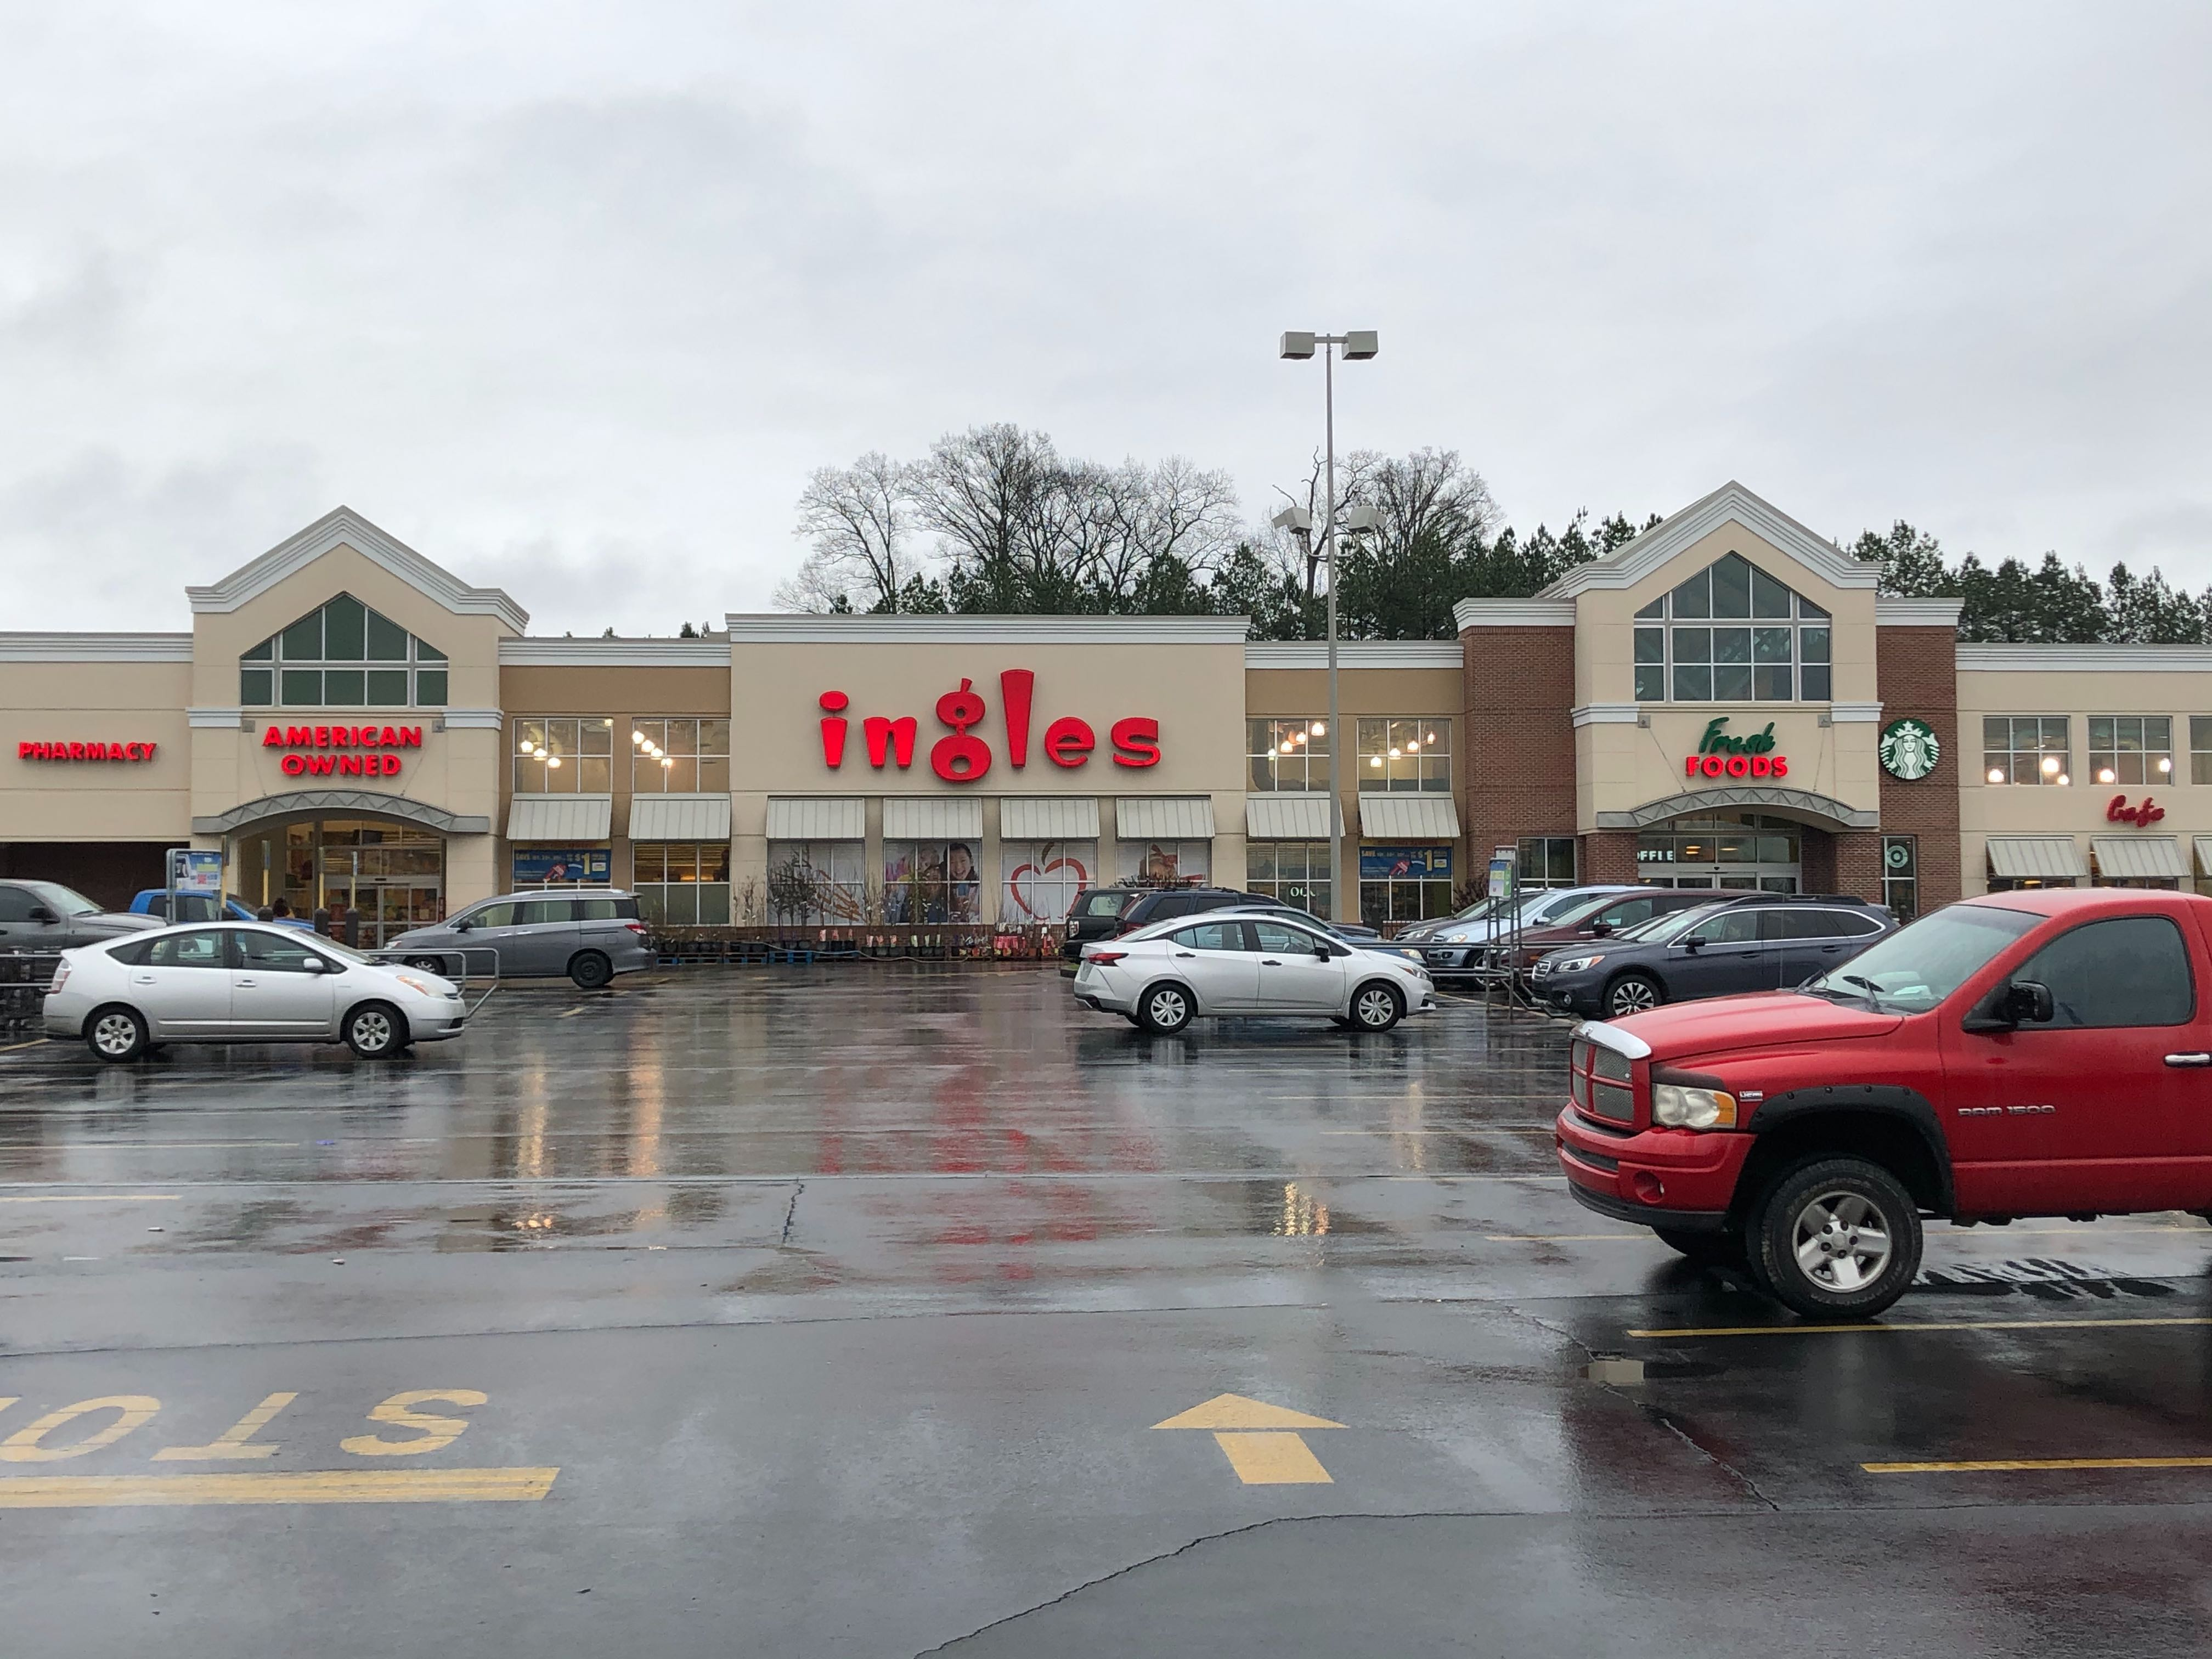 Christmas In The Park 2020 Chatsworth Ga Ingles Markets adjusting store hours to close at 10 p.m. until